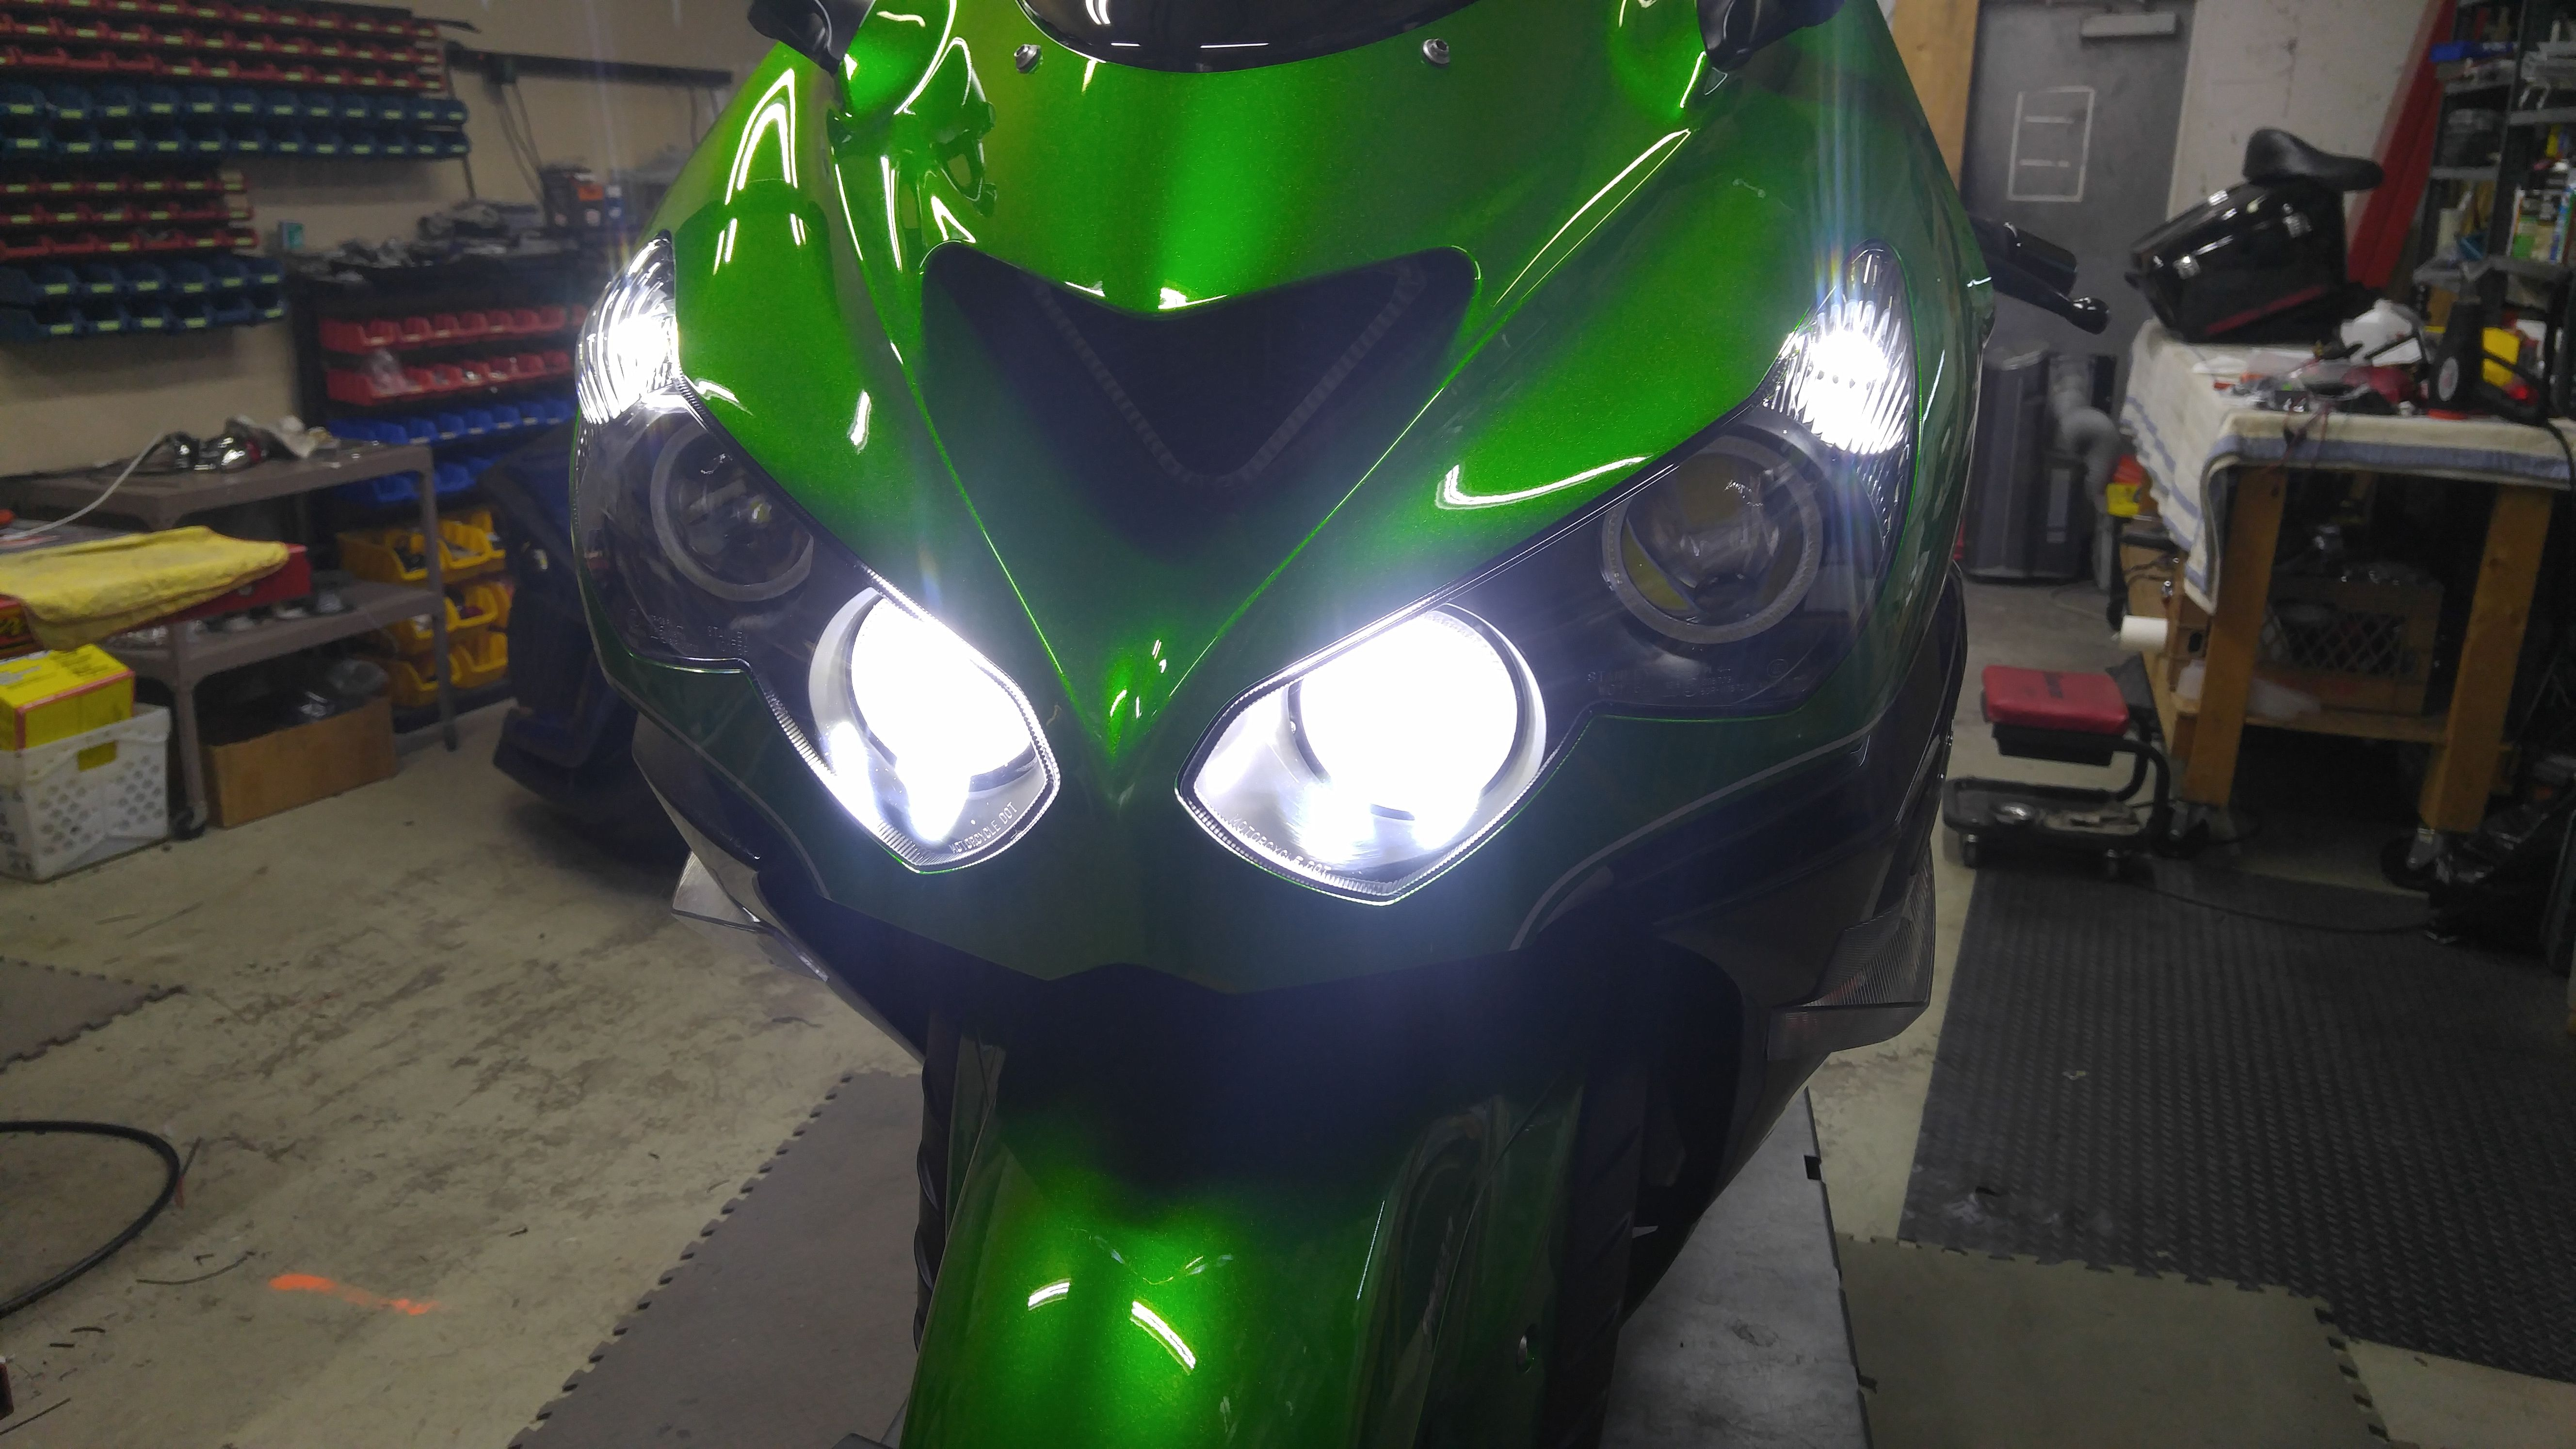 Pin by Chrome Glow_Sportbike Lites on Motorcycle Lighting